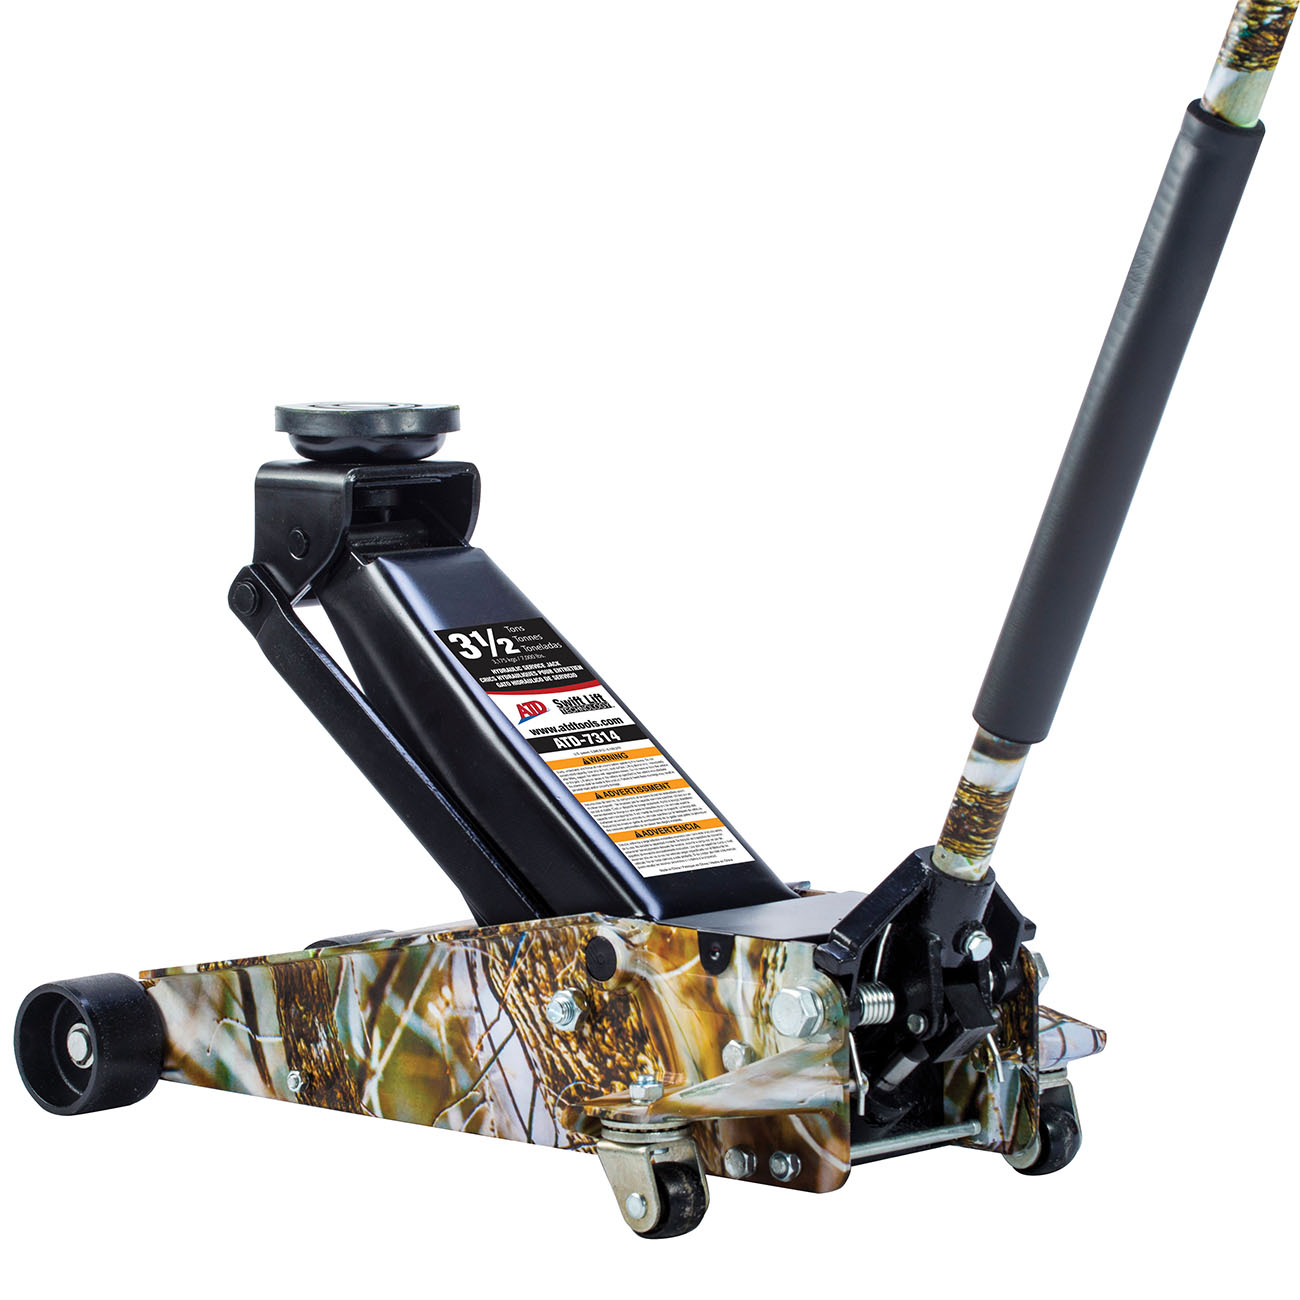 ATD Tools 3-1/2 Ton Swift Lift™ Camo Service Jack